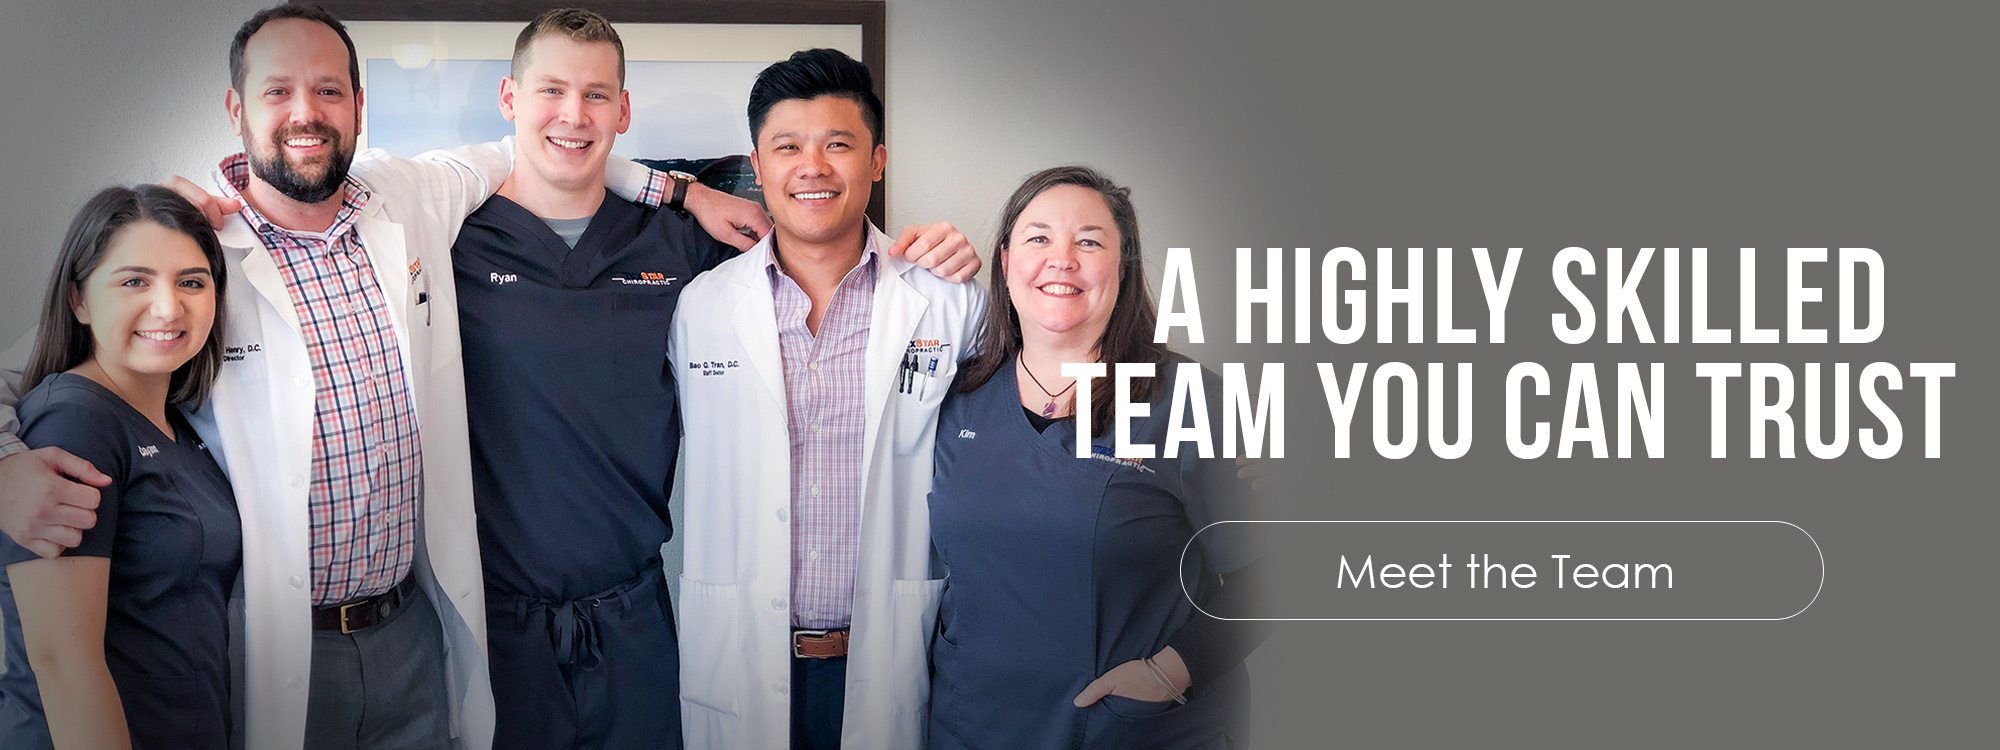 TexStar Chiropractic - Meet the Team